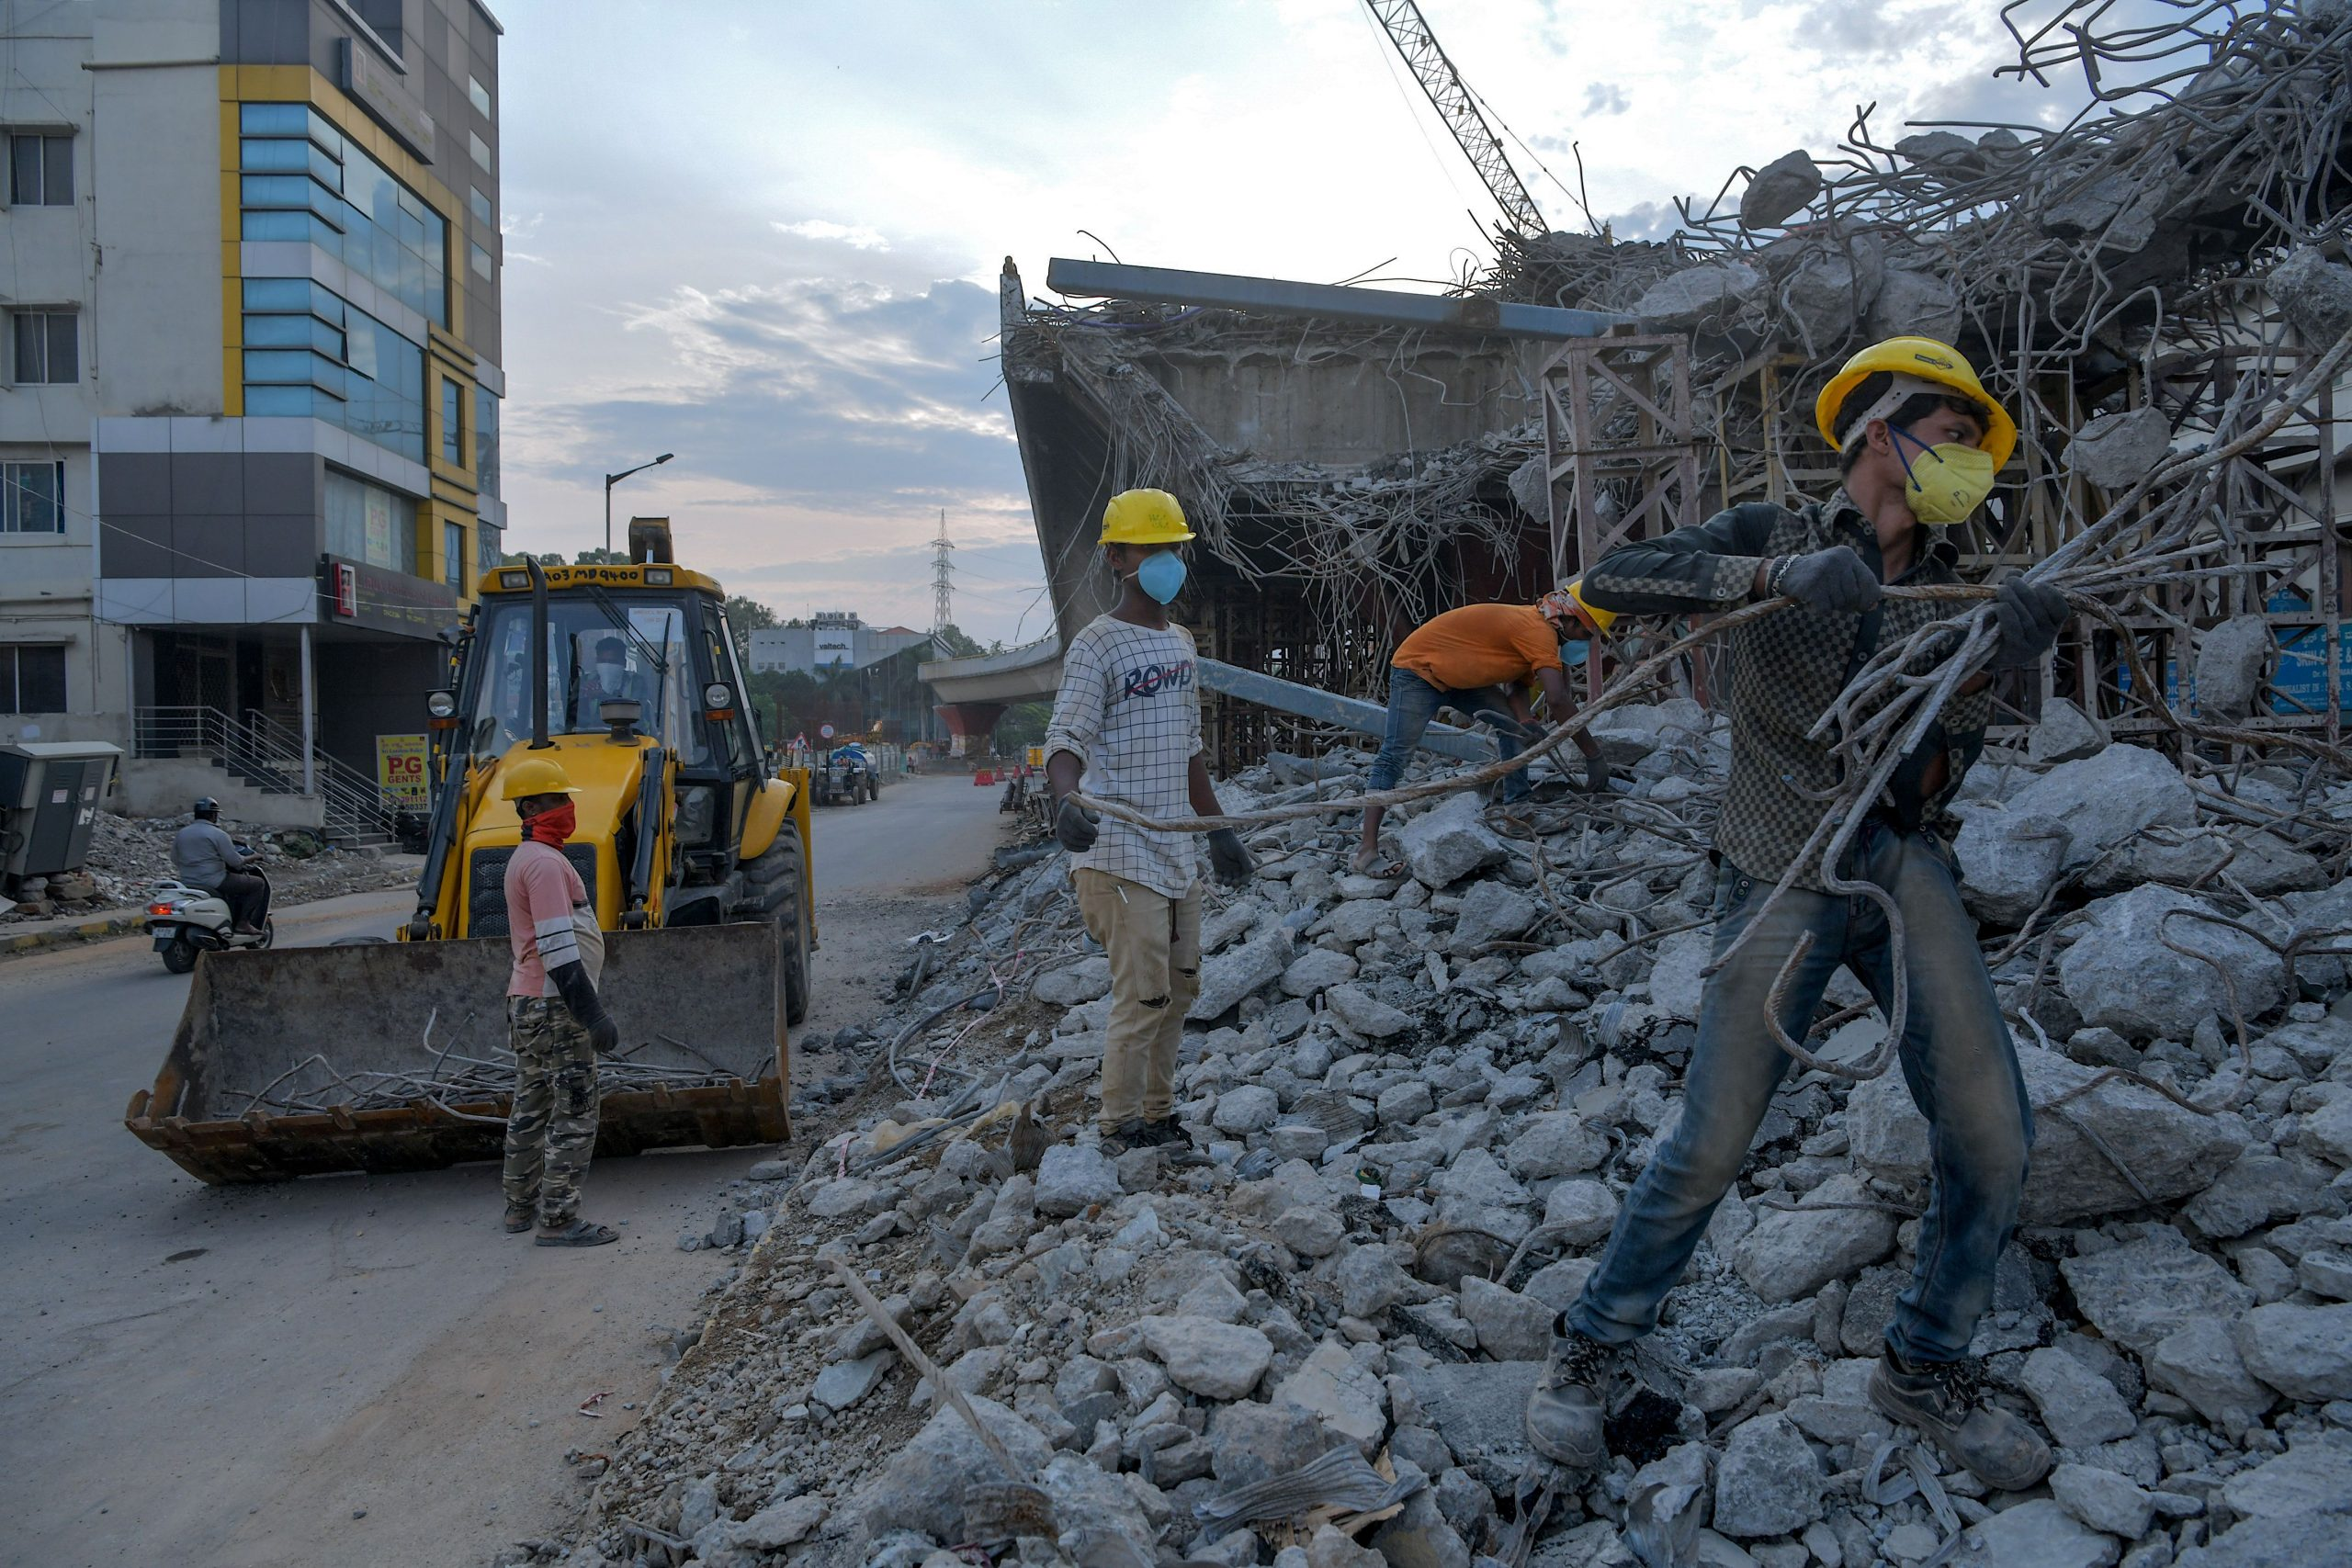 Bengaluru Metropolitan Rail Corporation Limited (BMRCL) labourers go back to work to destroy Jayadeva Circle Flyover for the second construction phase on 'Namma Metro Rail' network, after the government-imposed nationwide lockdown against the COVID-19 coronavirus has been lightened, in Bangalore on April 24, 2020. (Photo by Manjunath Kiran / AFP) (Photo by MANJUNATH KIRAN/AFP via Getty Images)